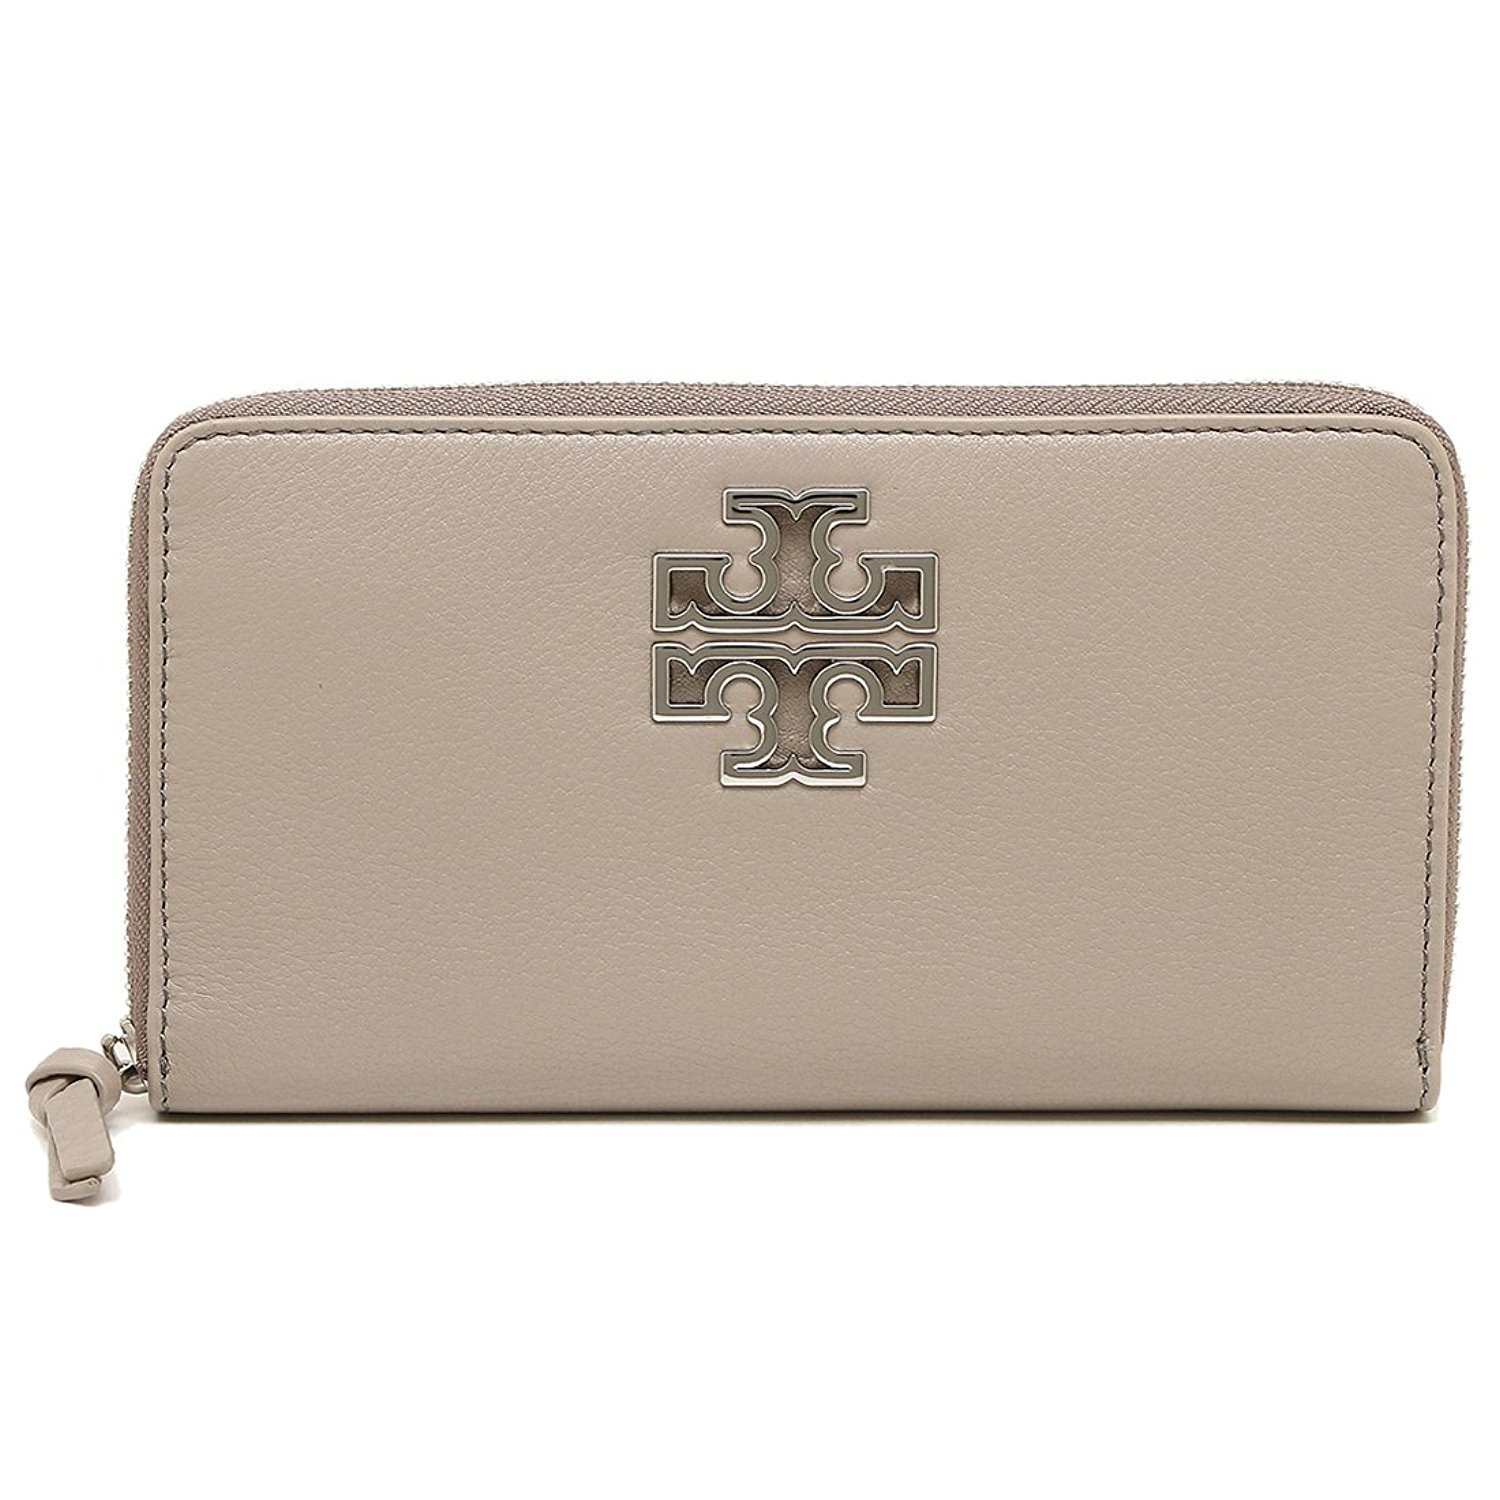 Tory Burch Wallet Zip Around Britten Silver TB Logo Leather (French Gray) by Tory Burch